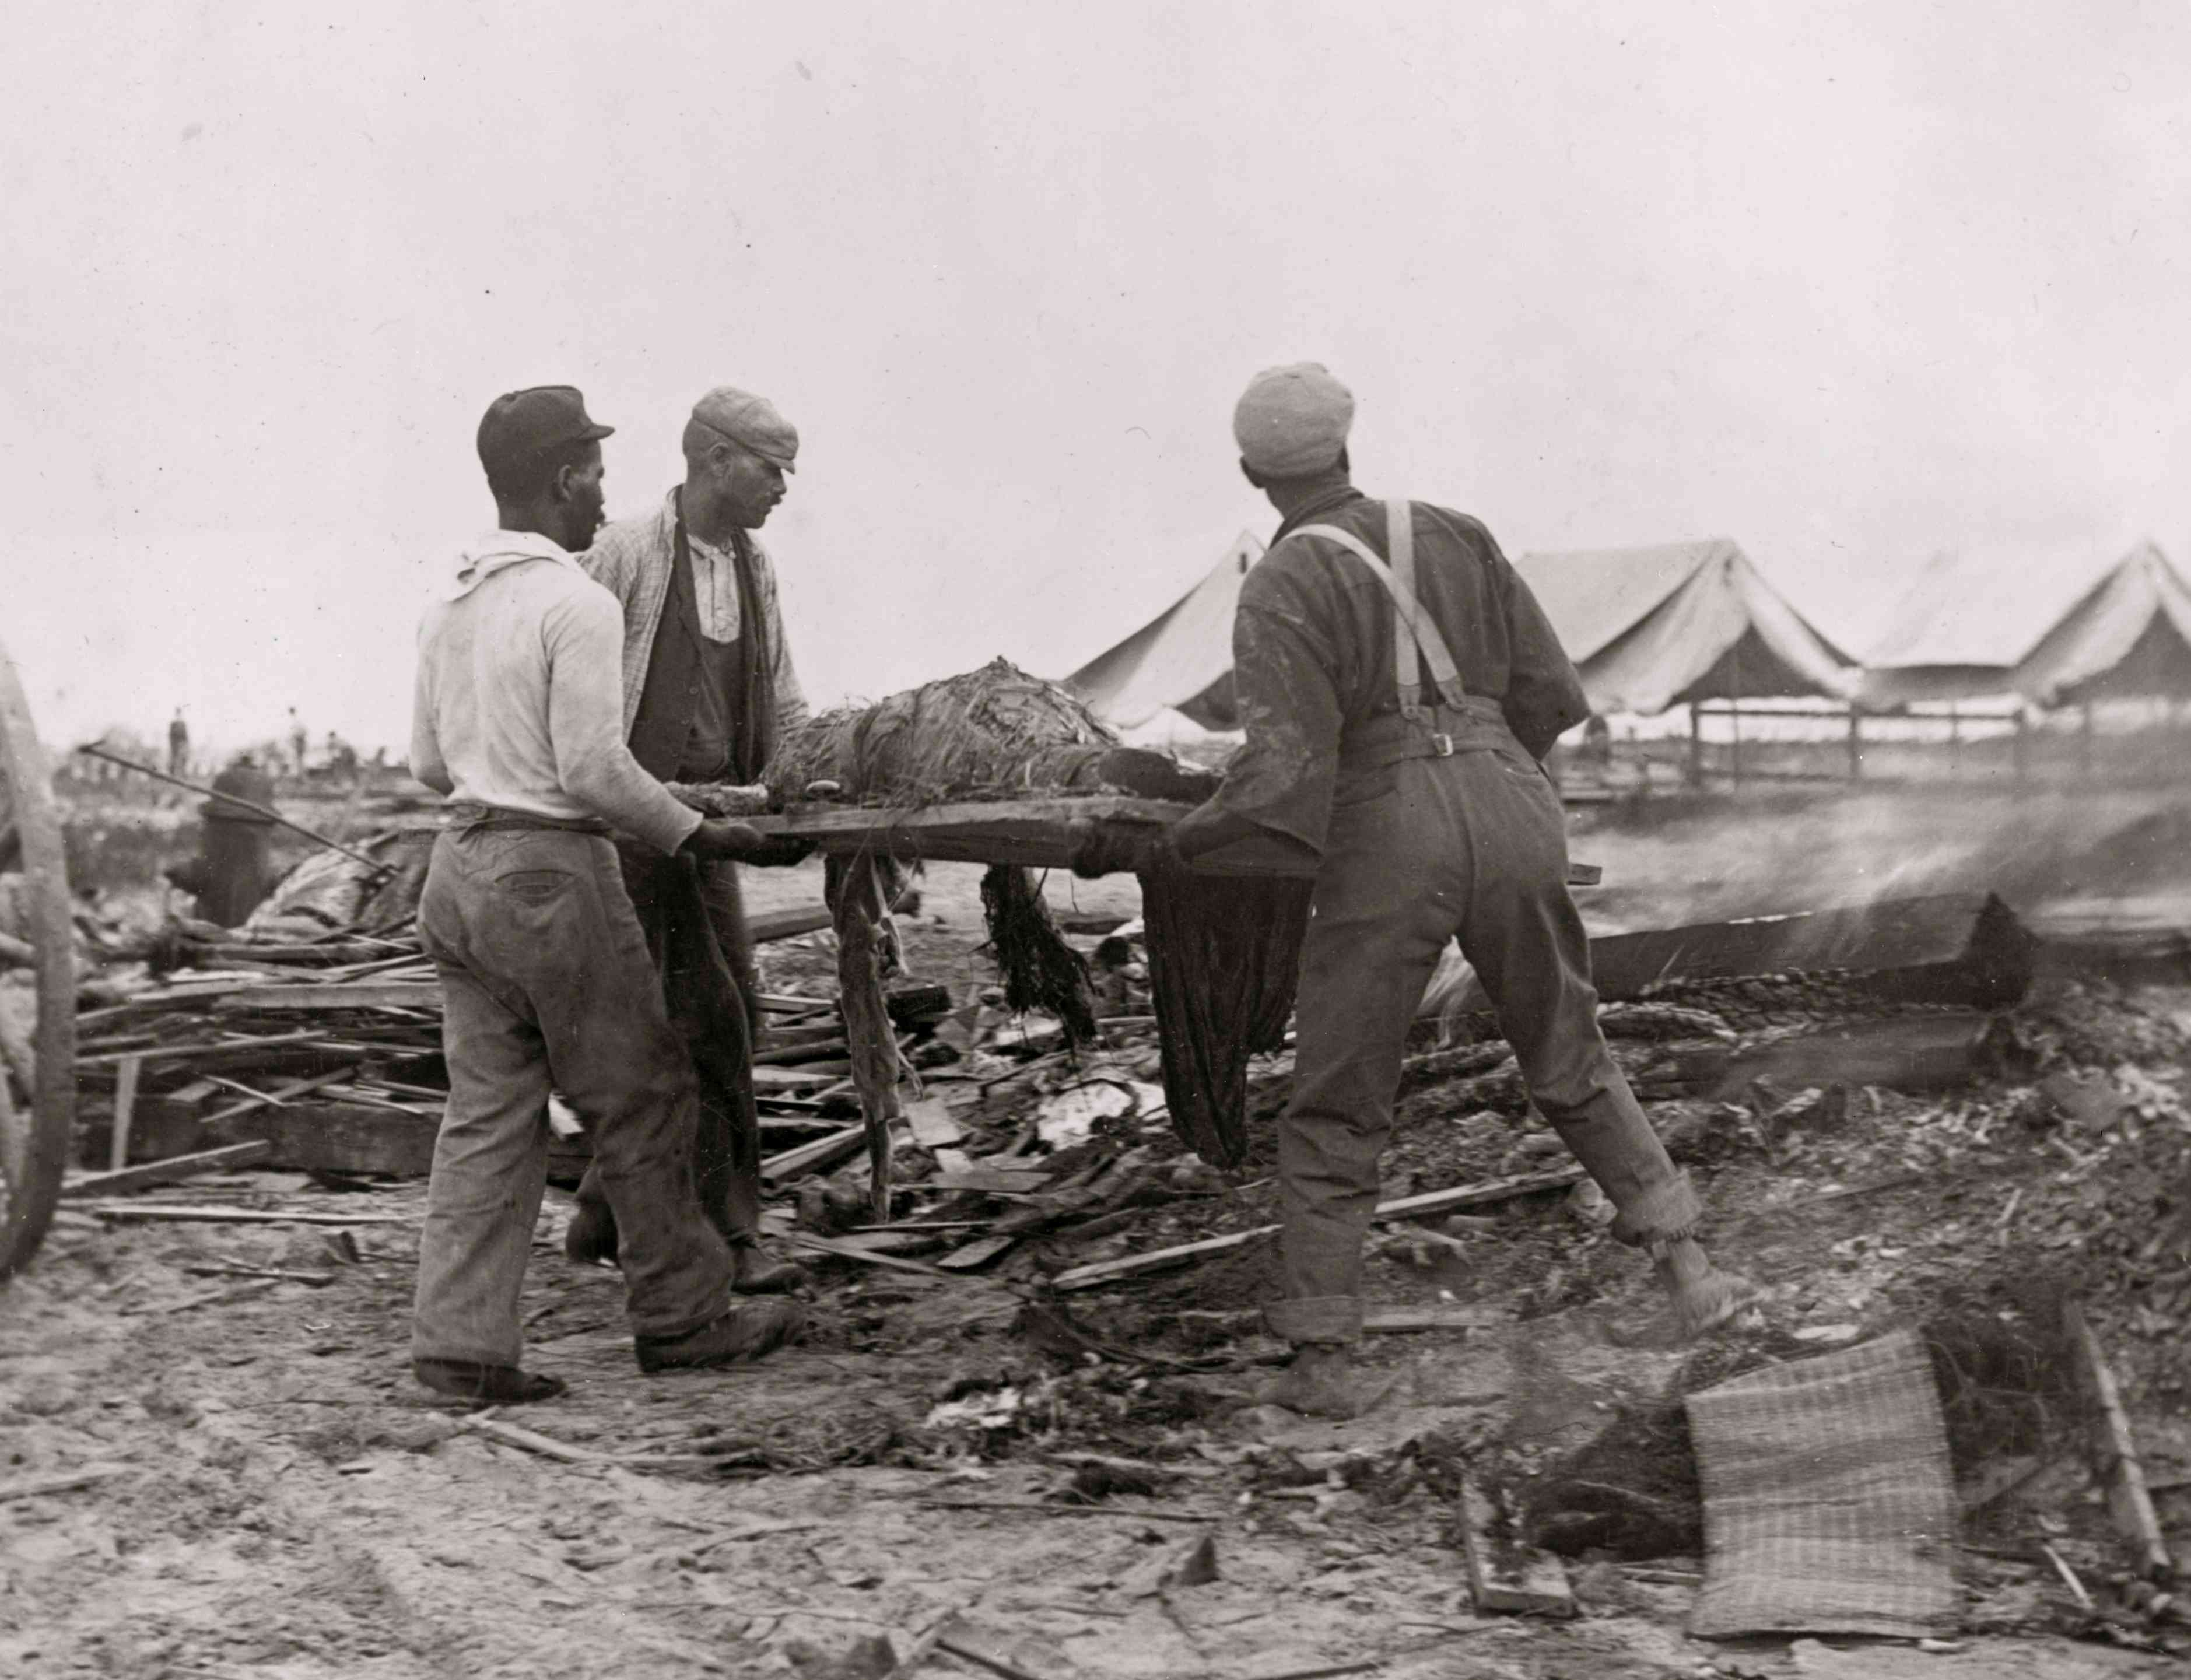 African American men carrying body on stretcher, surrounded by wreckage of the hurricane and flood, Galveston, Texas